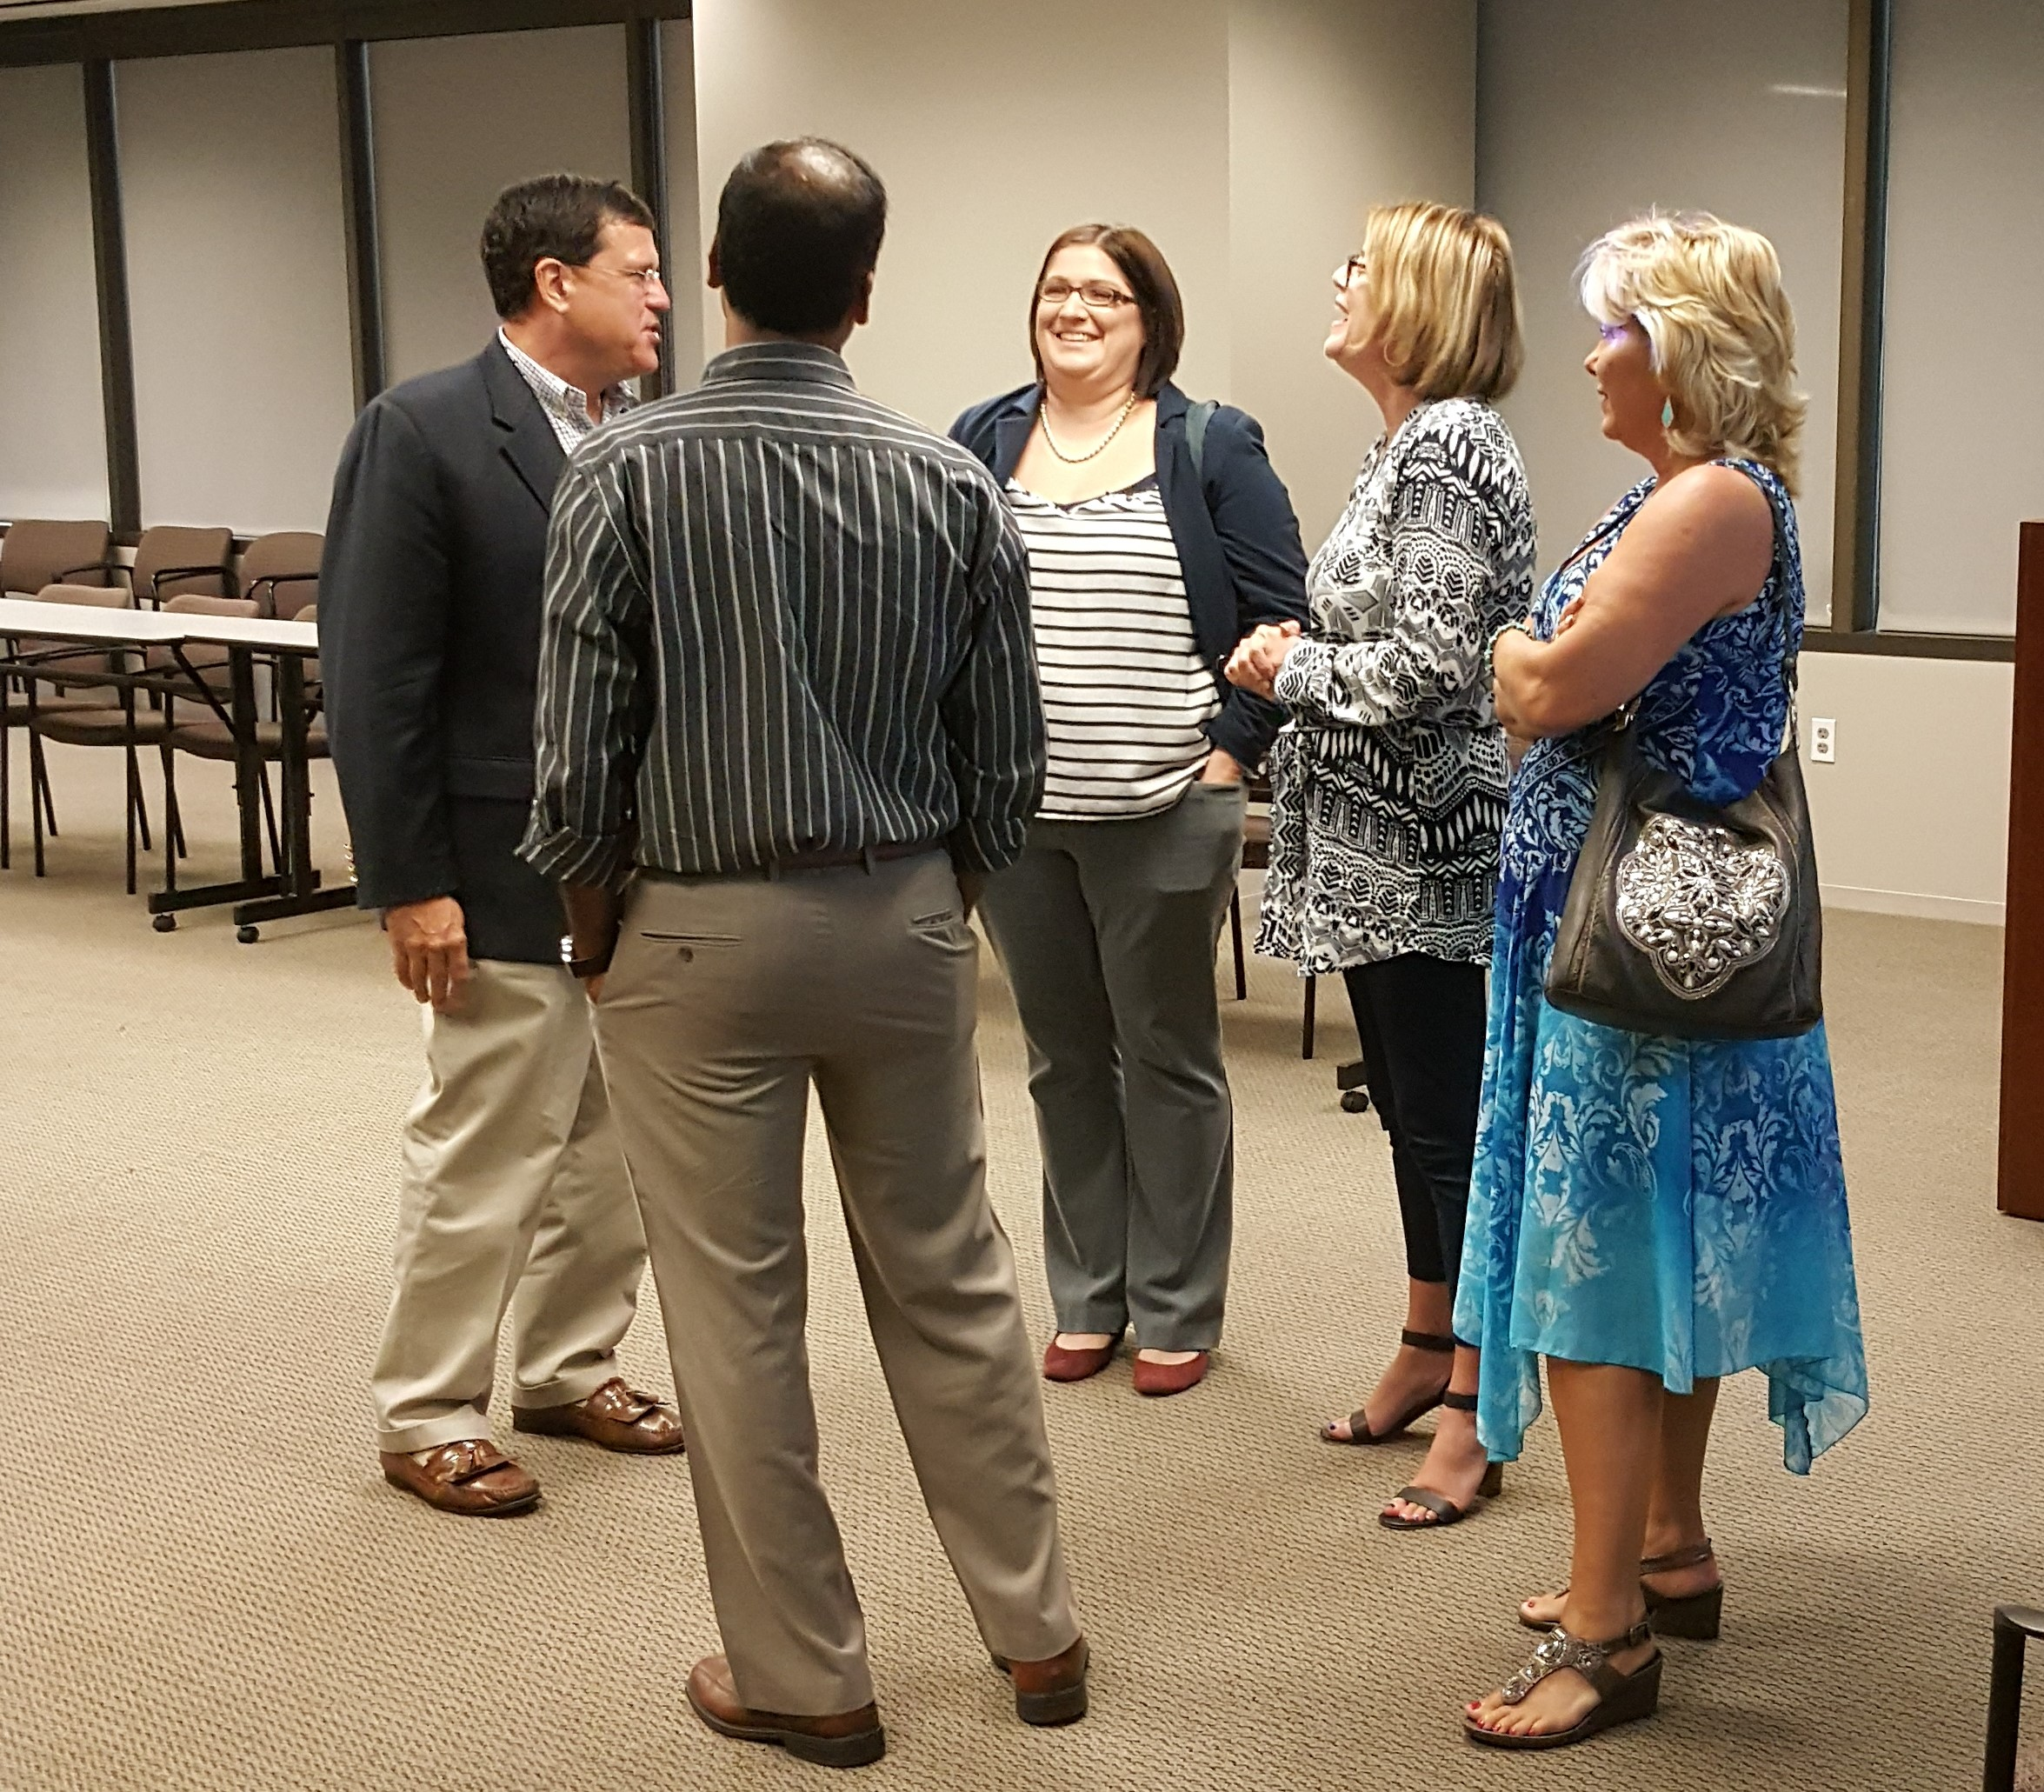 ITVibes Celebrates Its Quarterly Customer Appreciation Day at AH CPA's PLLC